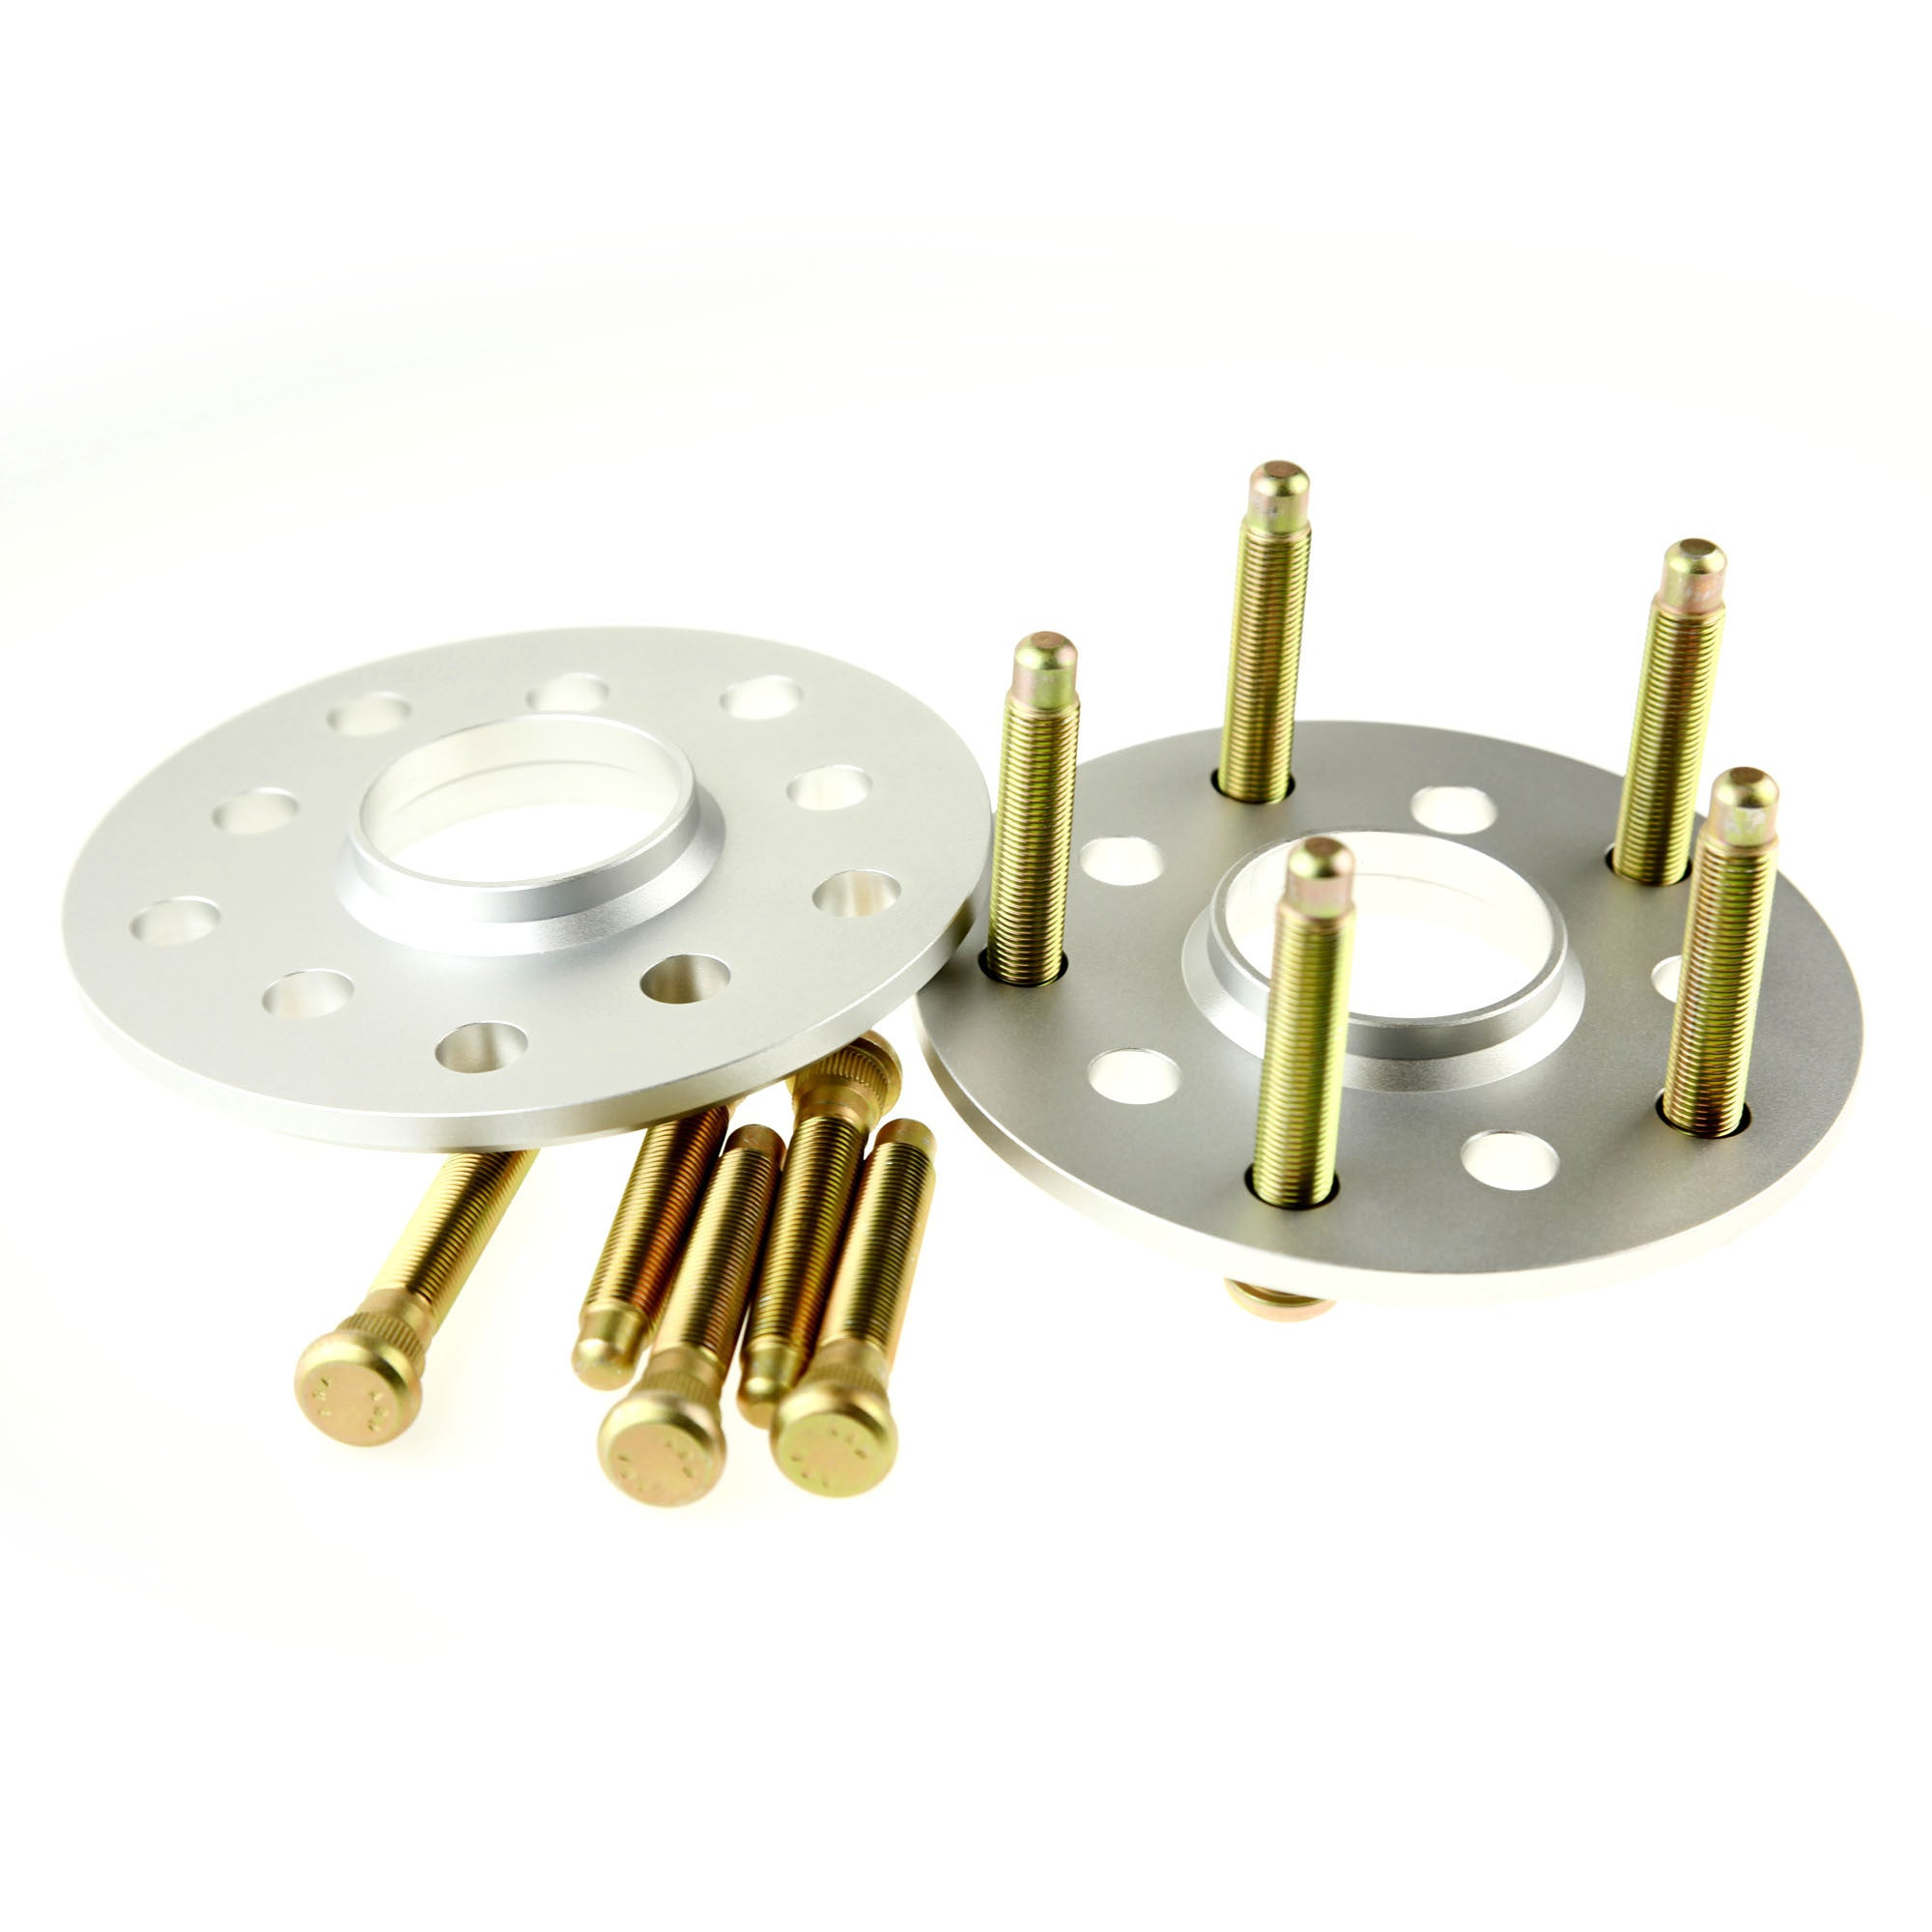 Mach v 10mm spacer kit with arp wheel studs